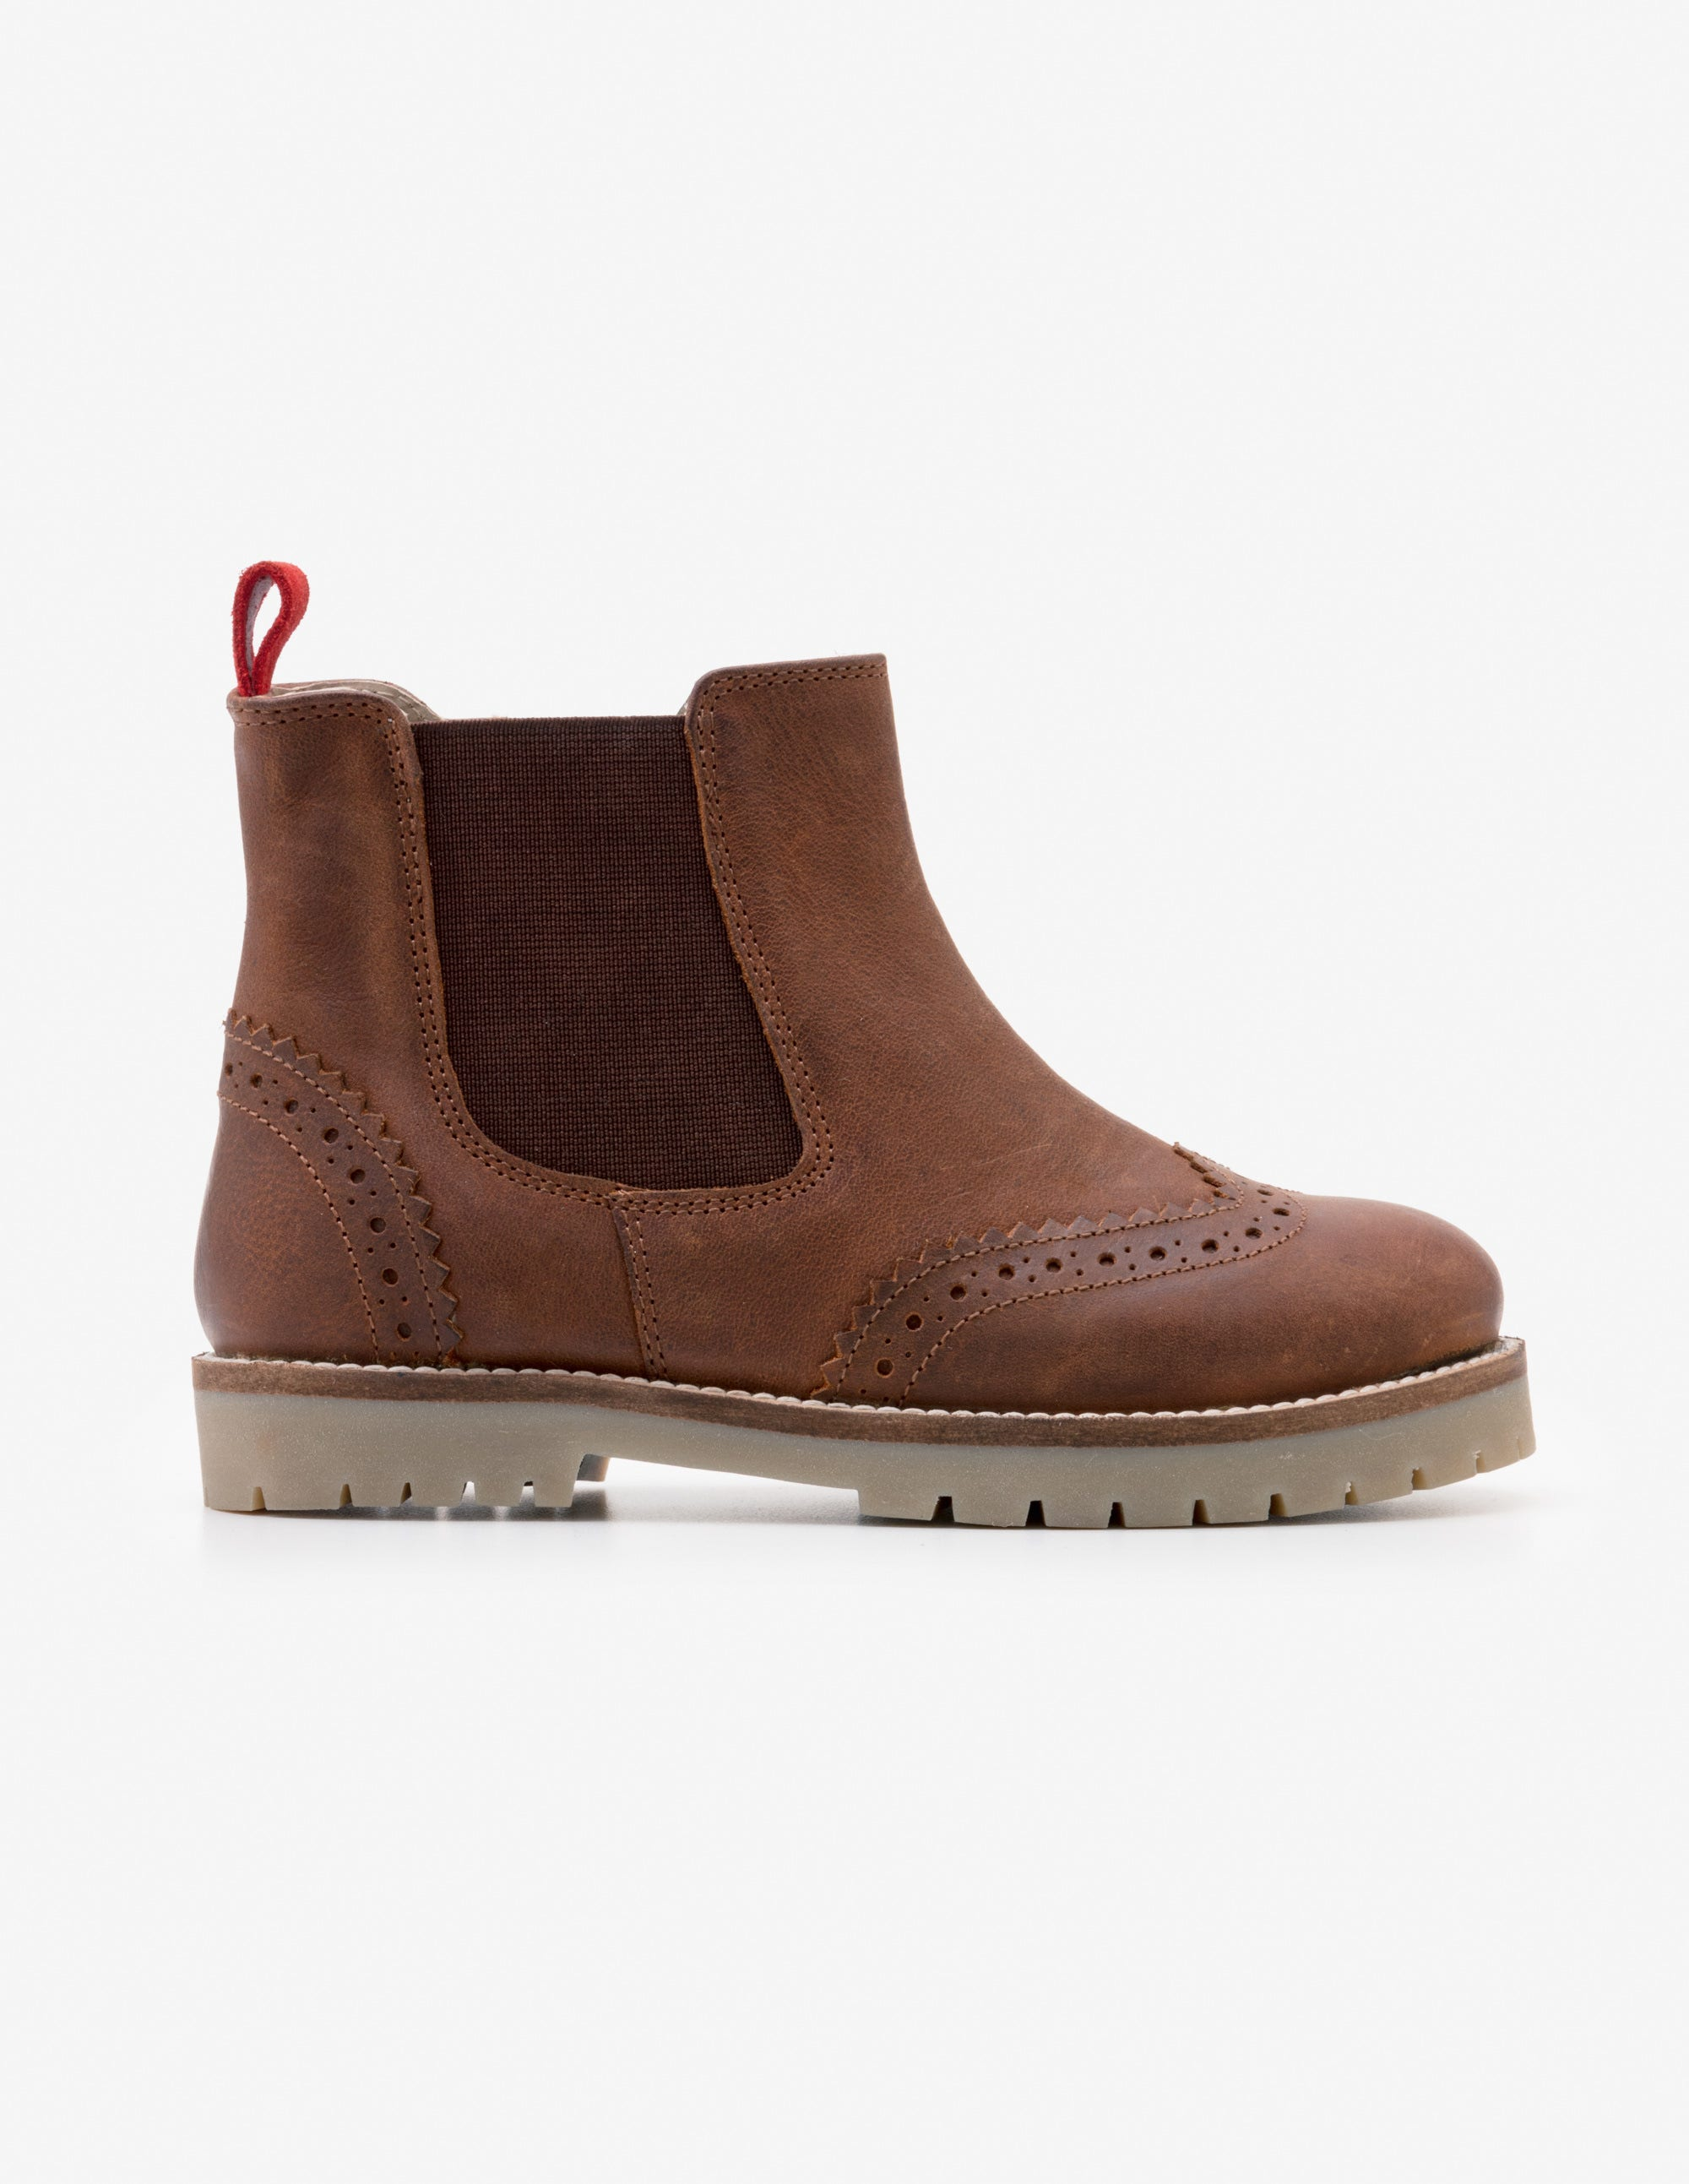 Bottines Chelsea en cuir TAN Garçon Boden, Brown